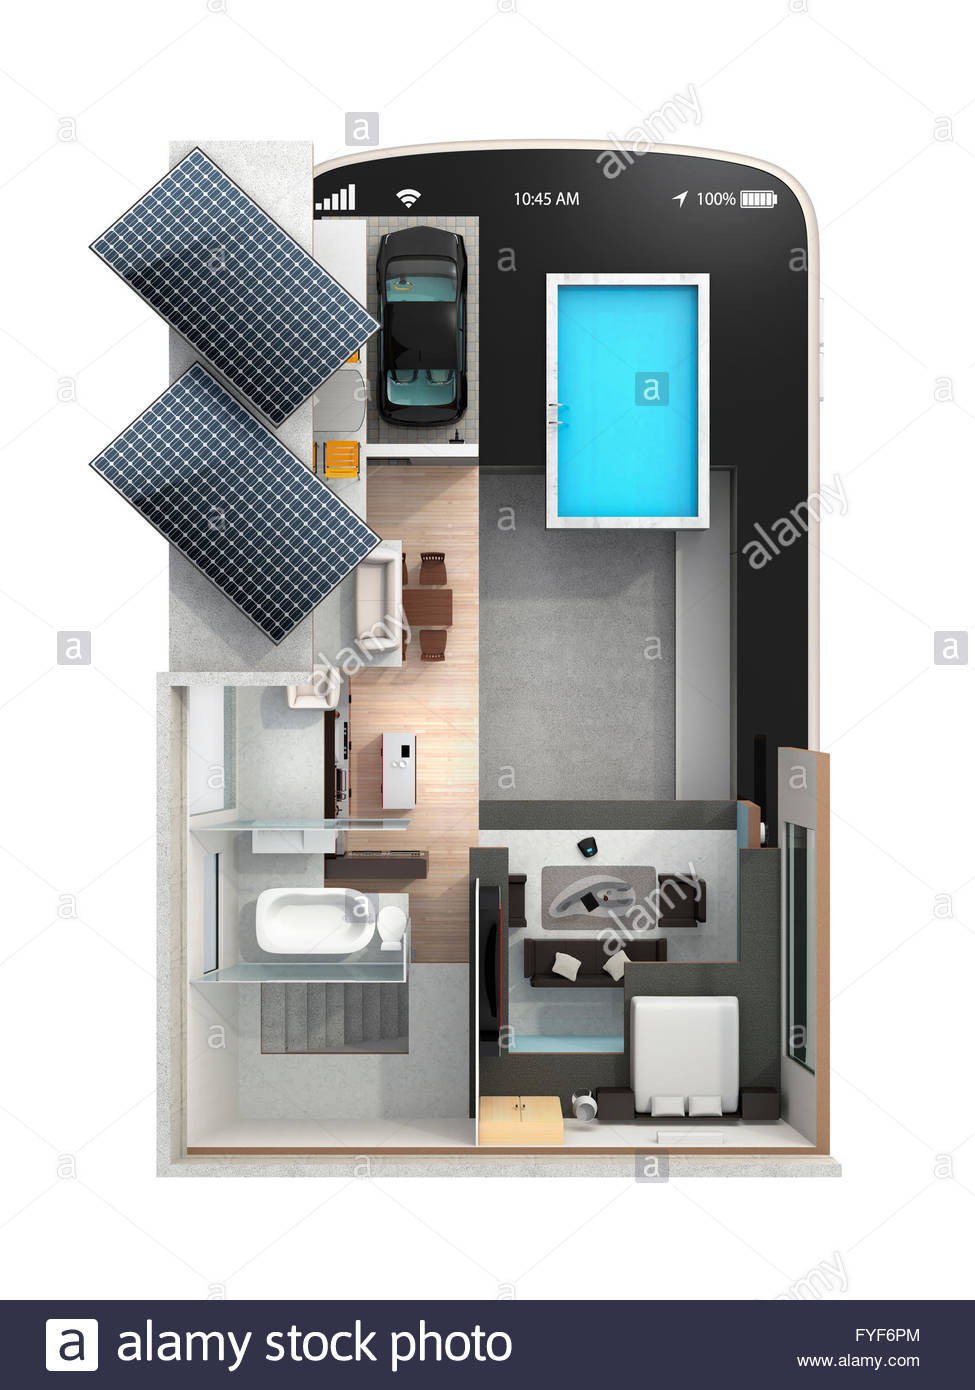 Solar Panel House Plans Fresh Smart House On A Smart Phone the Smart House Equippd with